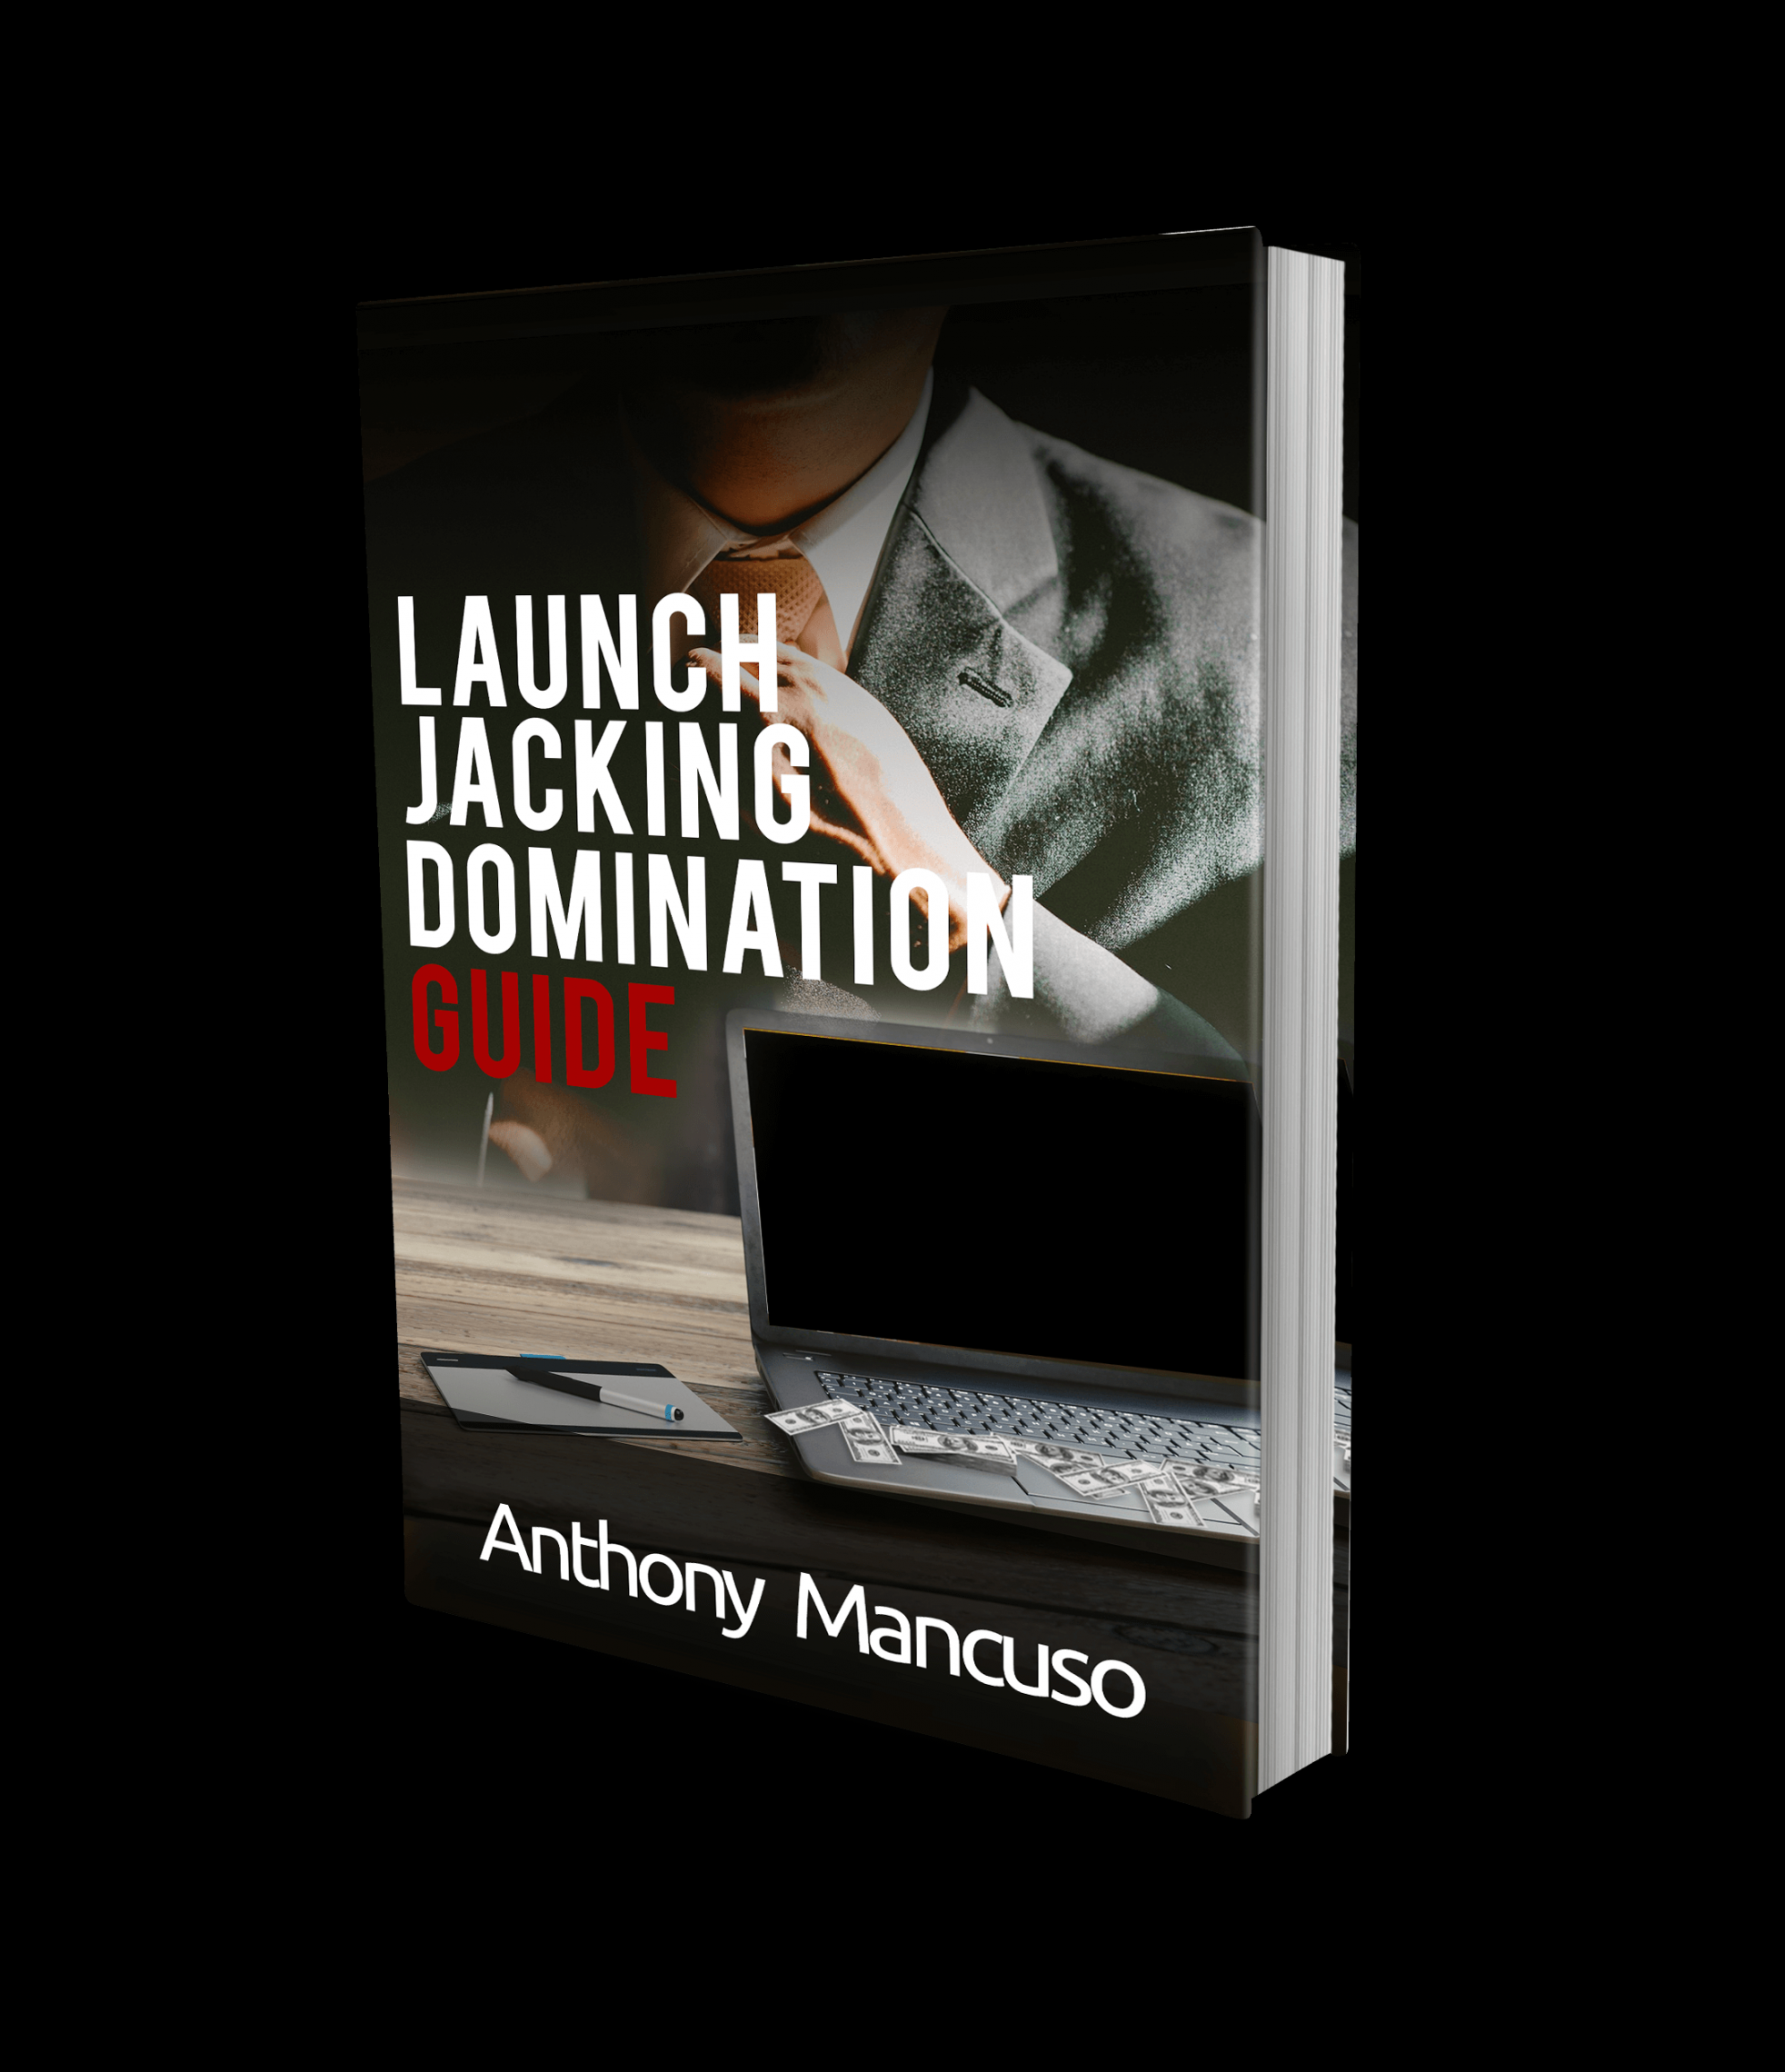 how to make an extra 2000 – 3000 a month using my tried and proven launch jacking methods (launch jacking domination) - How to make an extra $2,000 – $3,000 a month using my tried and proven launch jacking methods.(Launch Jacking Domination)